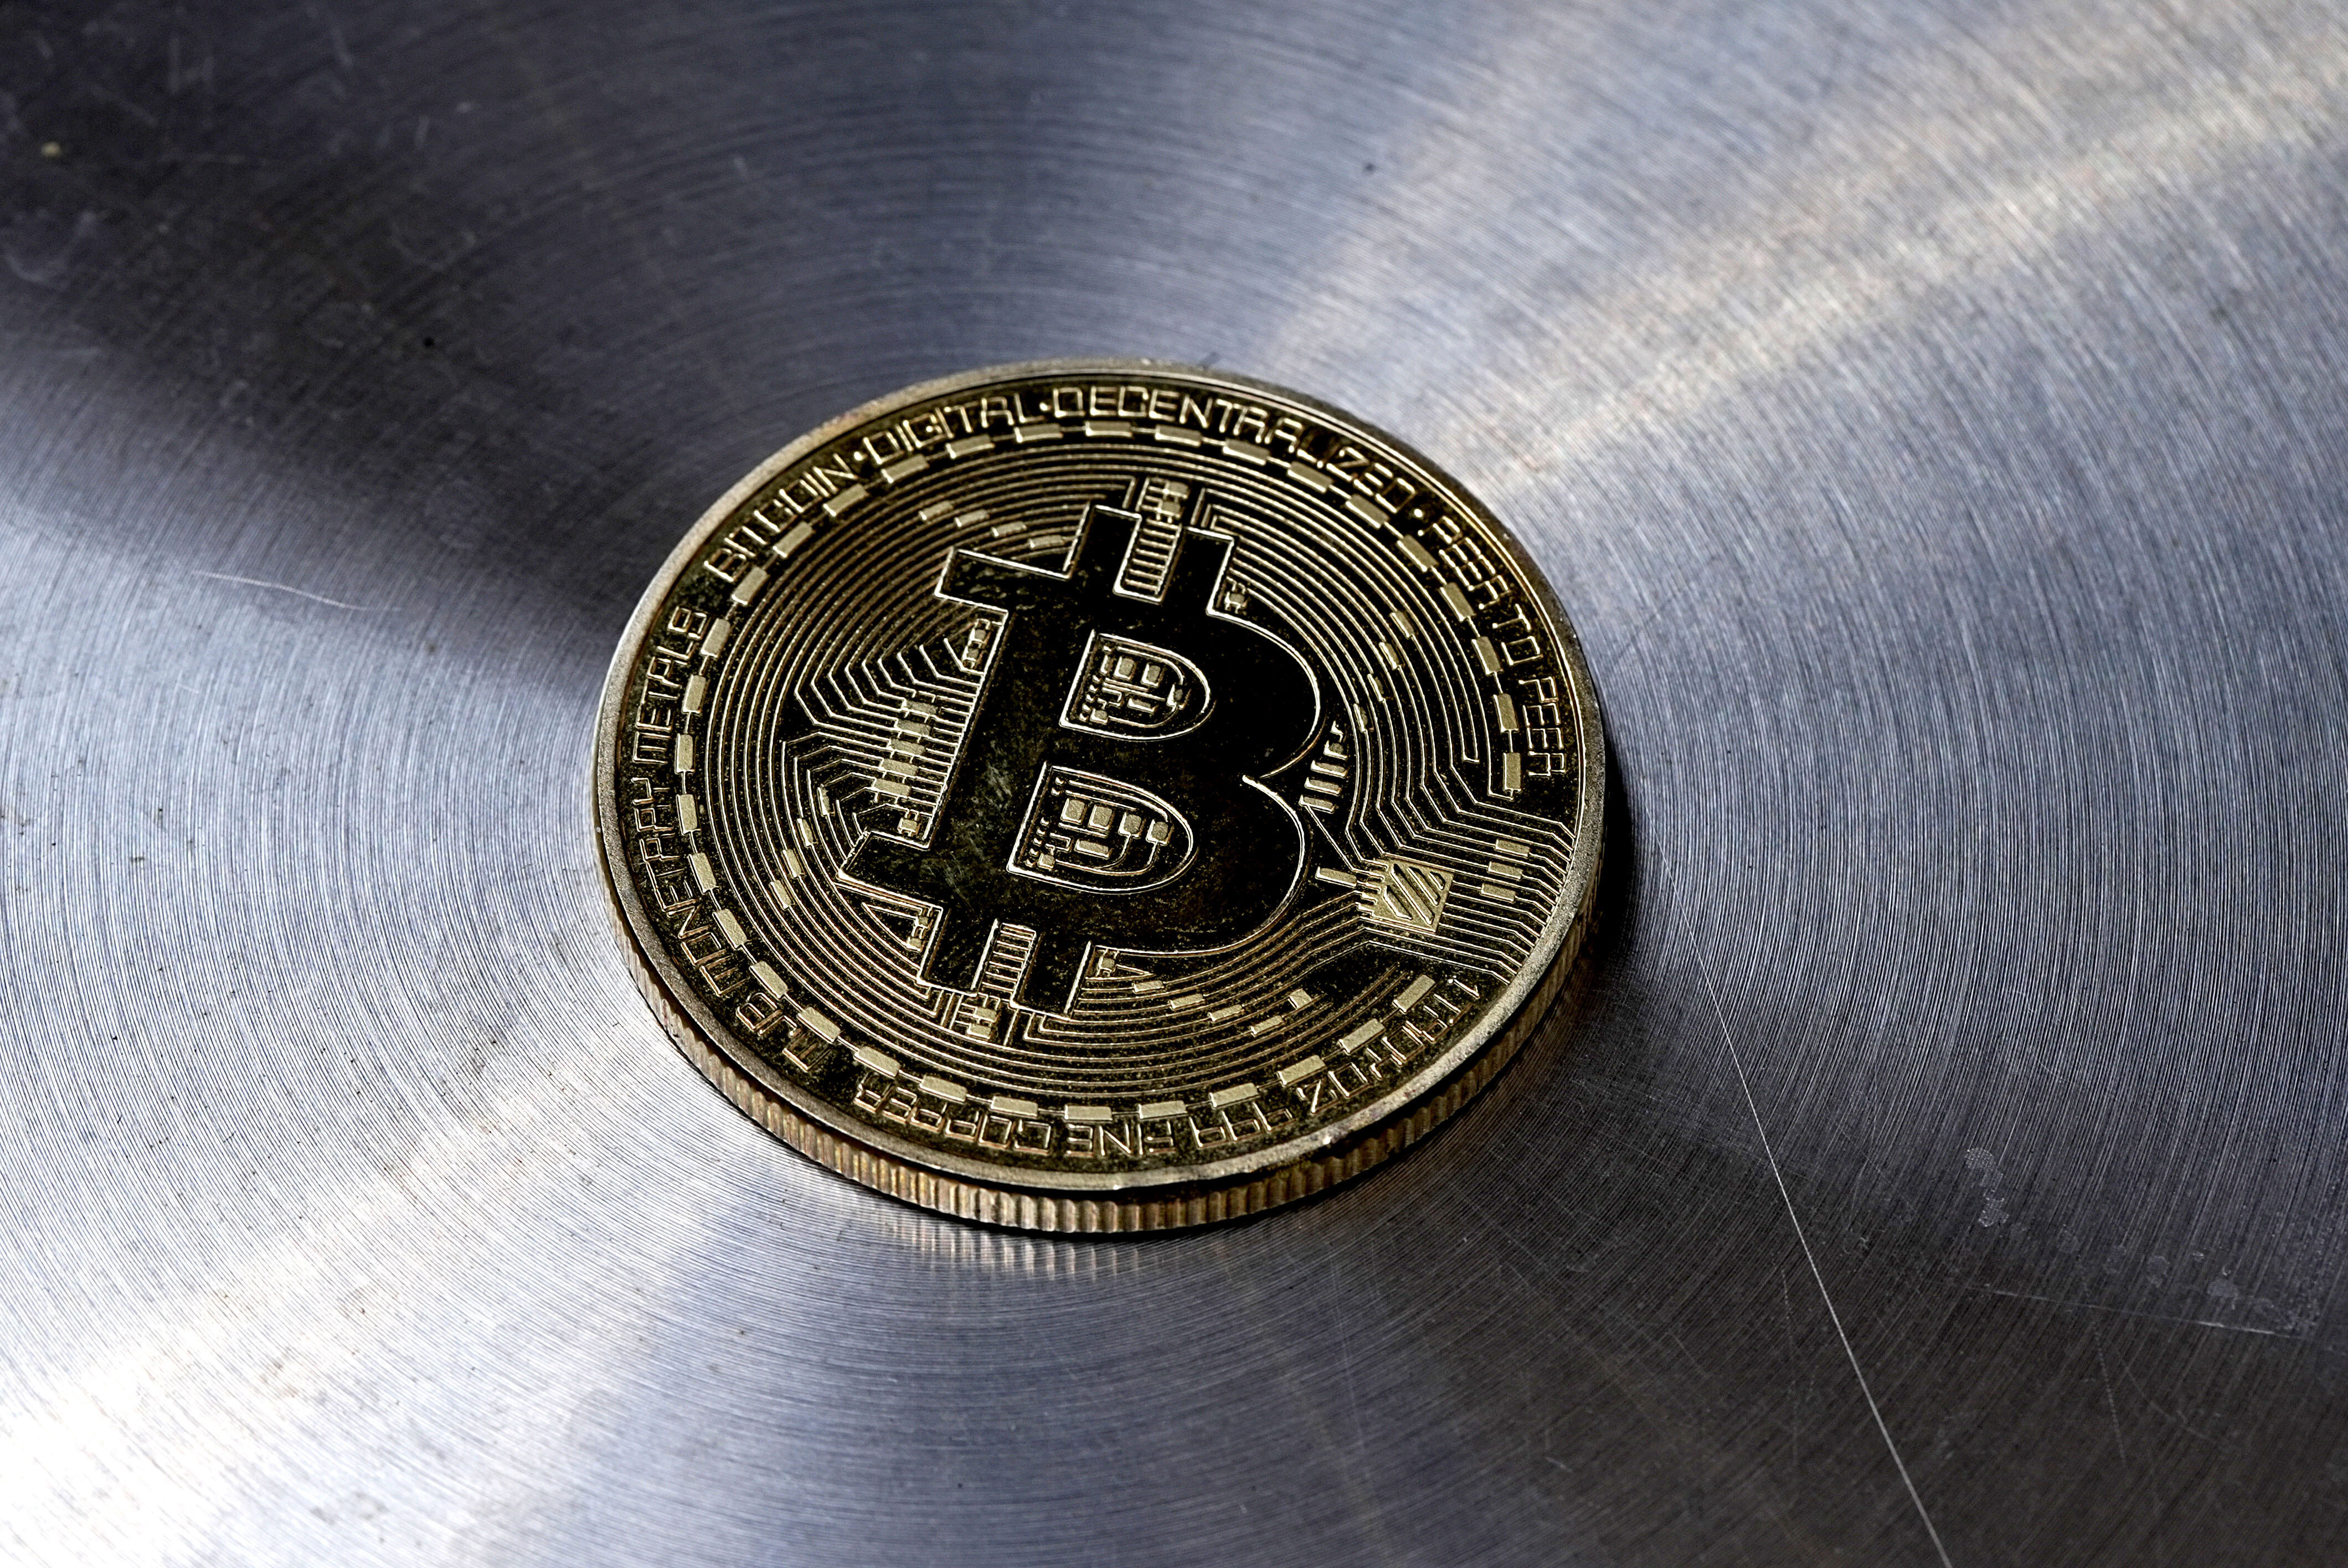 Most cryptos will fail, but bitcoin could be here for good